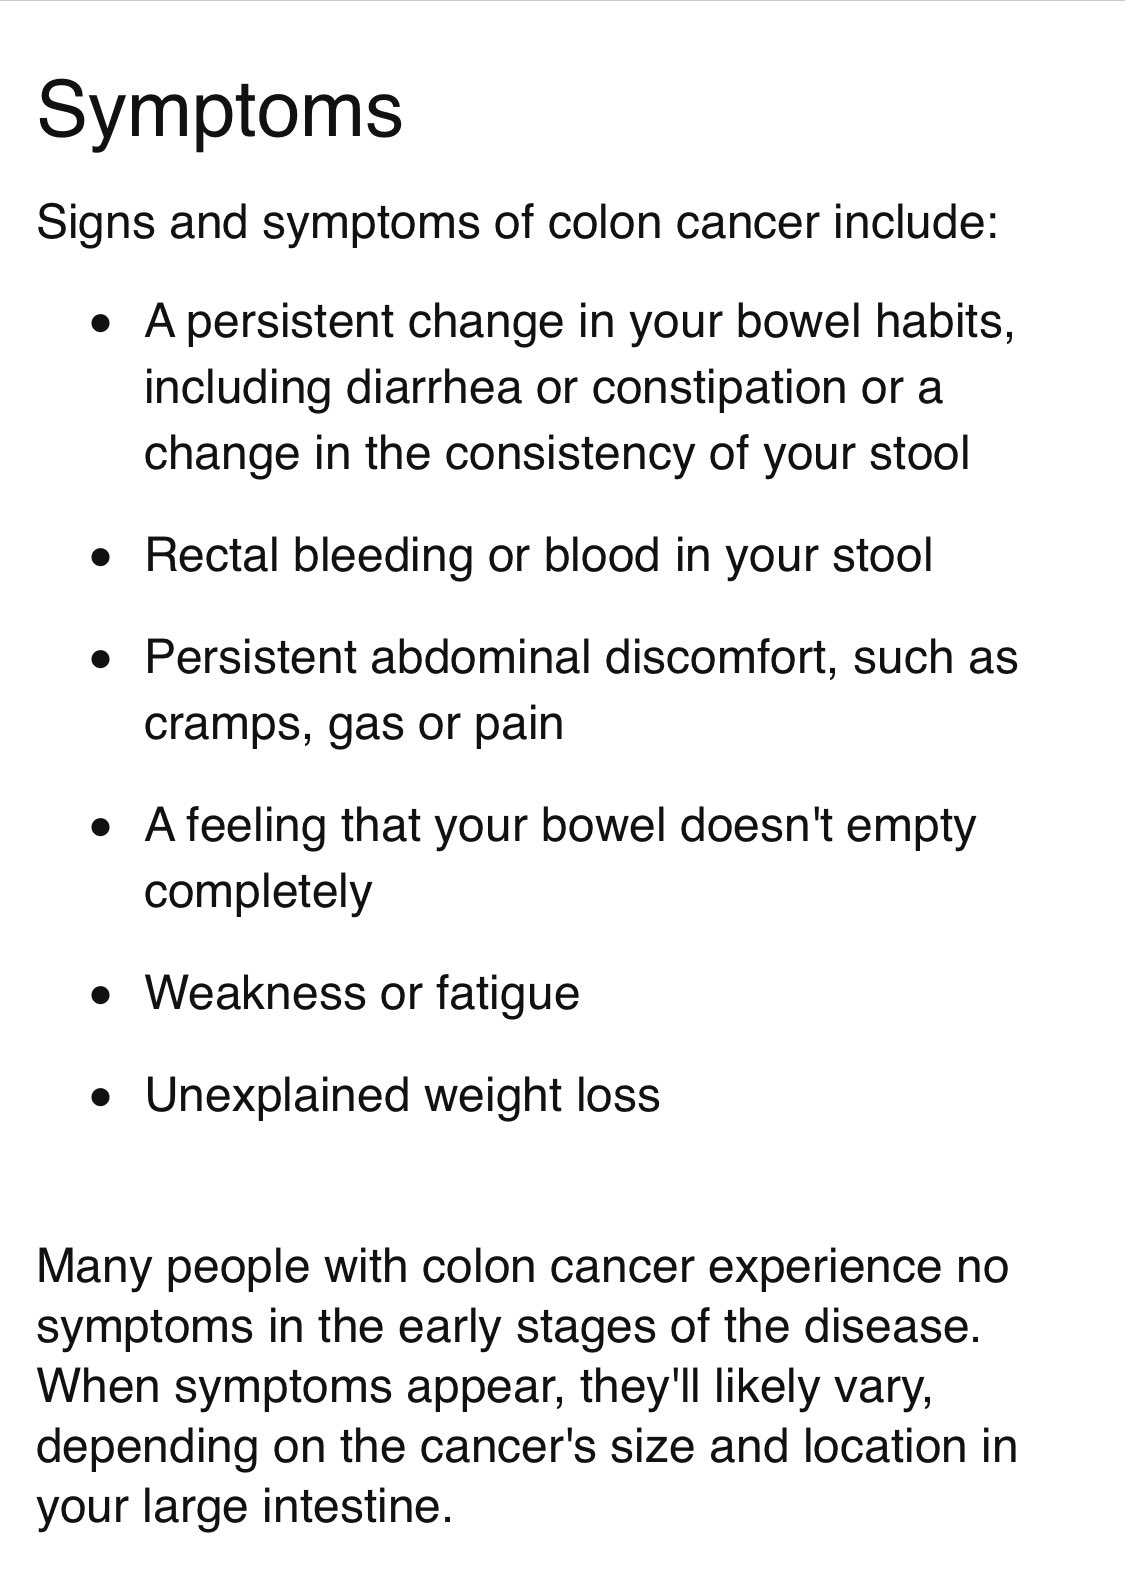 Leahhhhhh On Twitter The Symptoms Of Colorectal Cancers Vary Depending On Where In The Colon The Cancer Is Located Any Rectal Bleeding Blood In Your Stool Positive Fecal Occult Screening